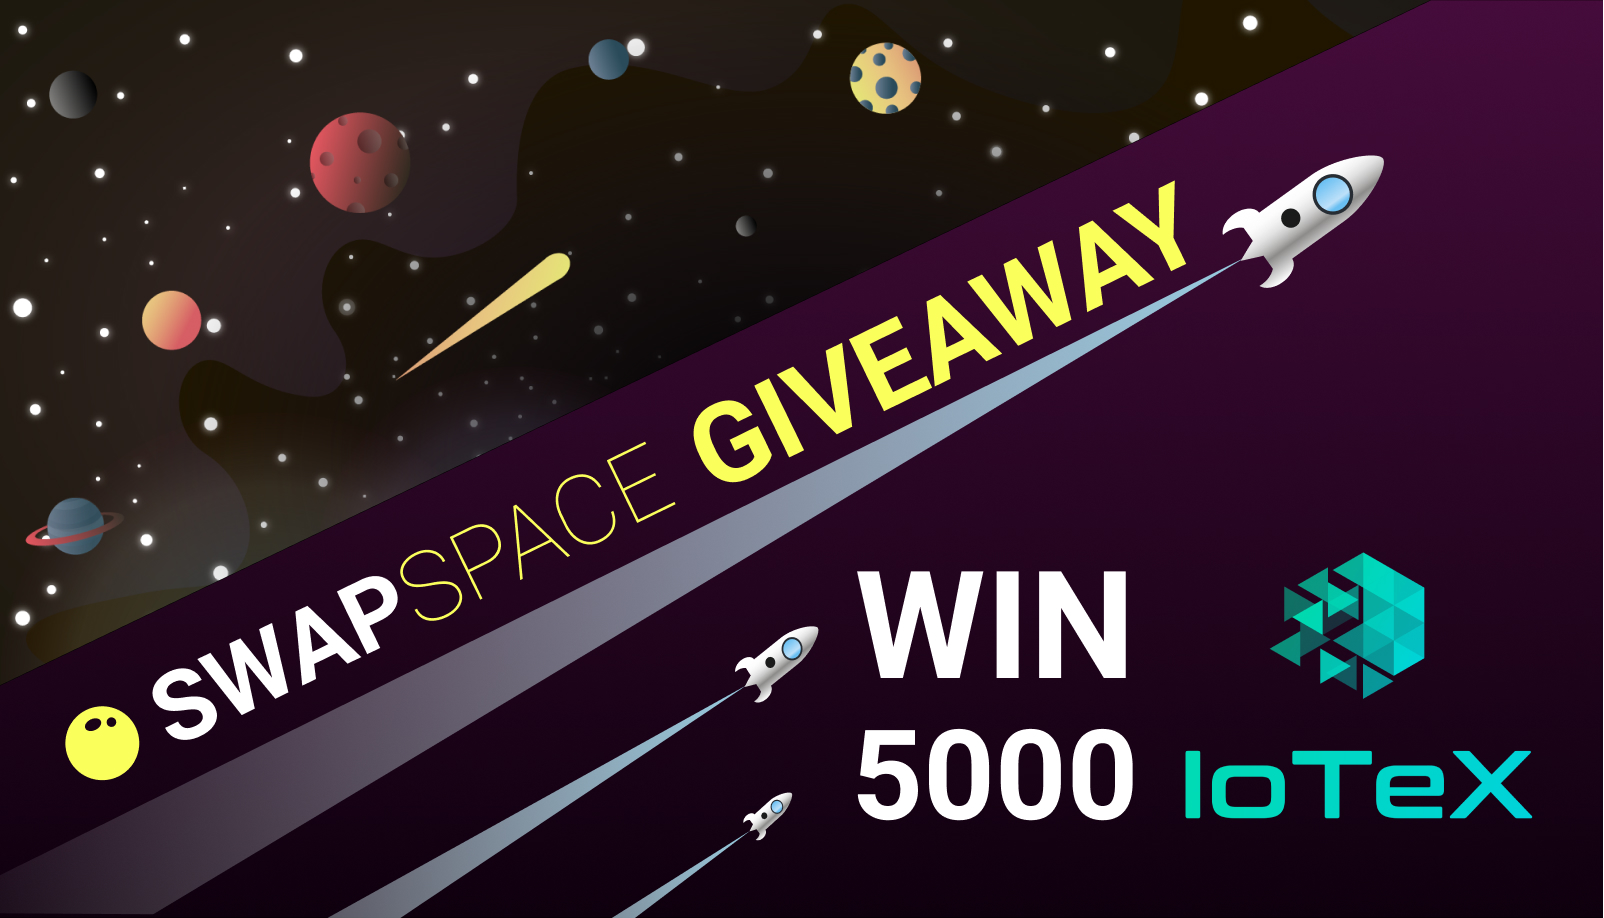 SwapSpace and IoTeX Giveaway. Win 5000 IOTX for Free